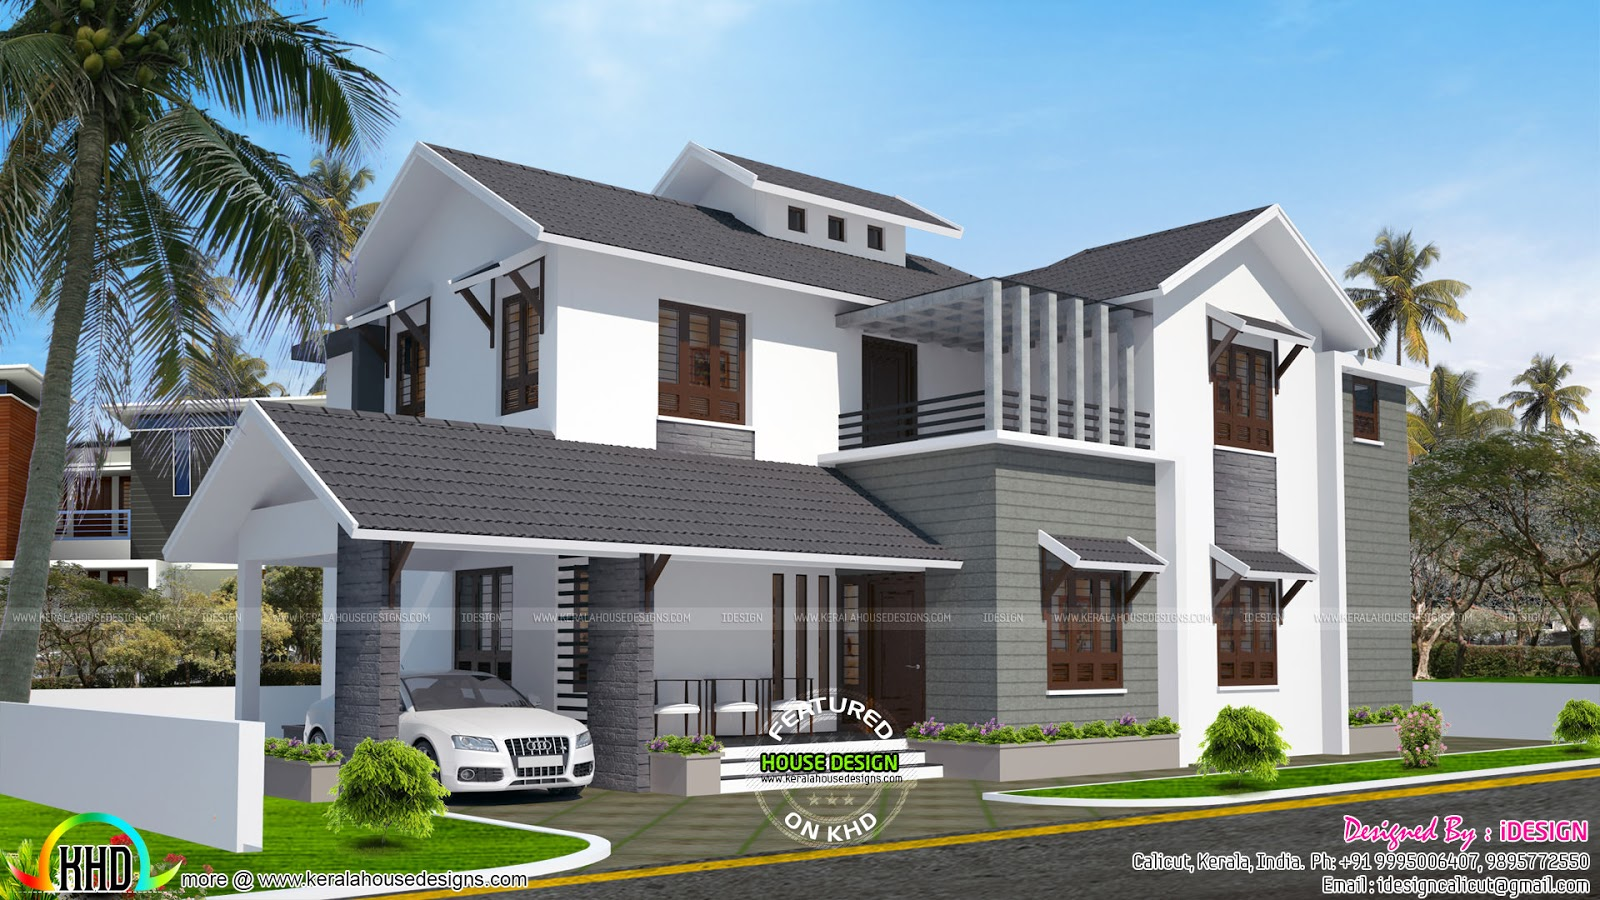 18 lakh cost estimated remodeling home plan kerala home Old home renovation in kerala